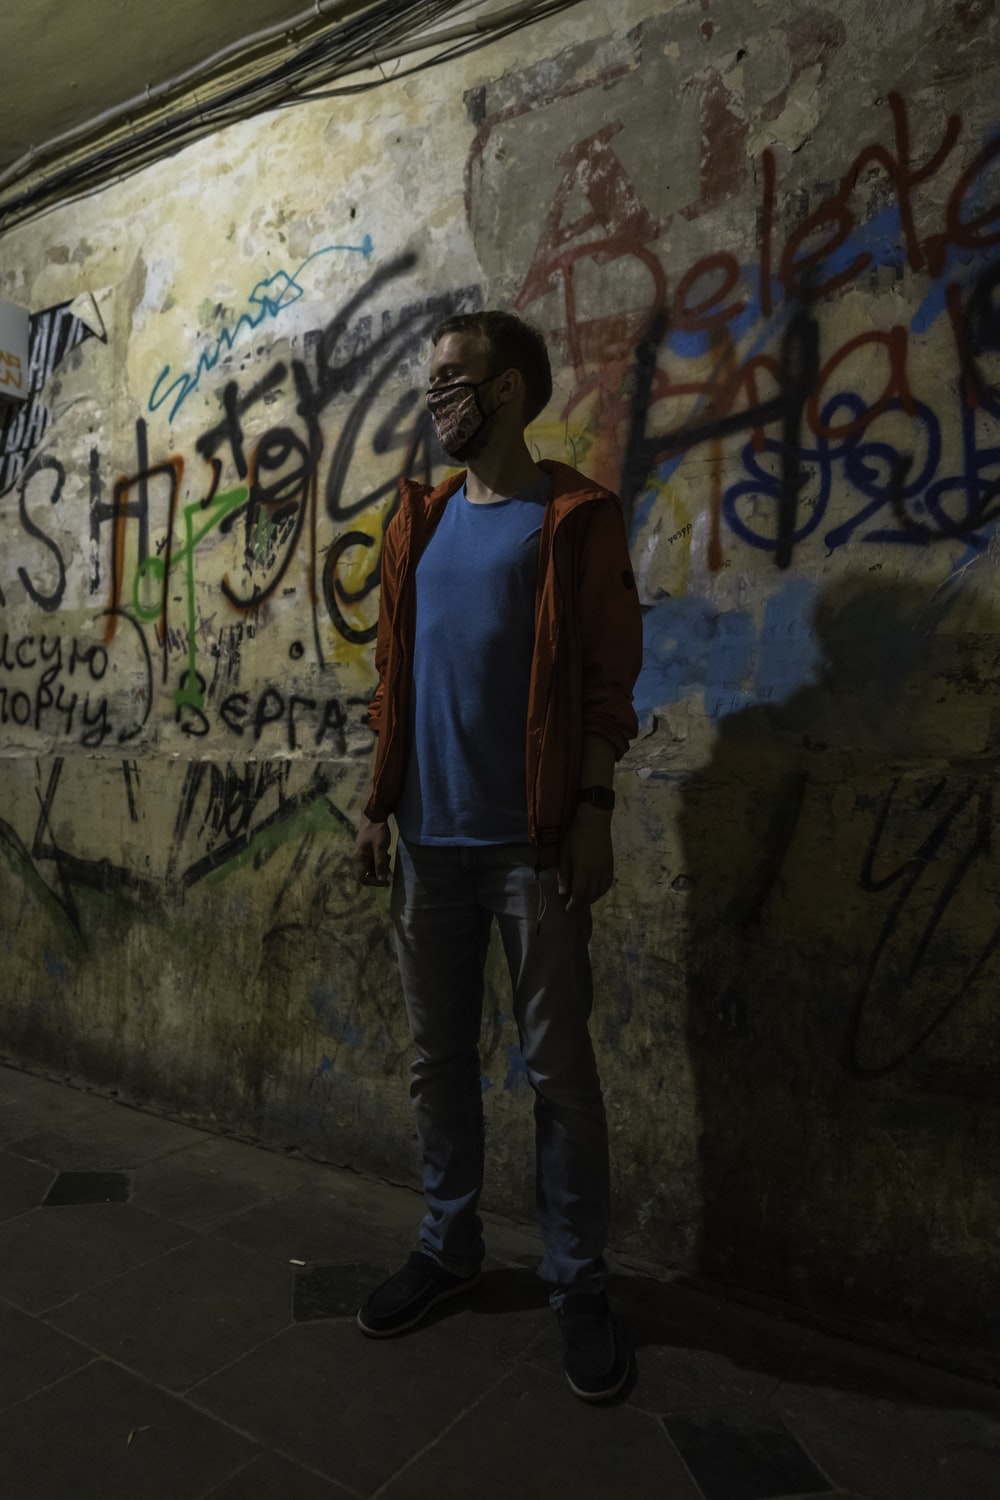 woman in red and blue jacket standing beside wall with graffiti